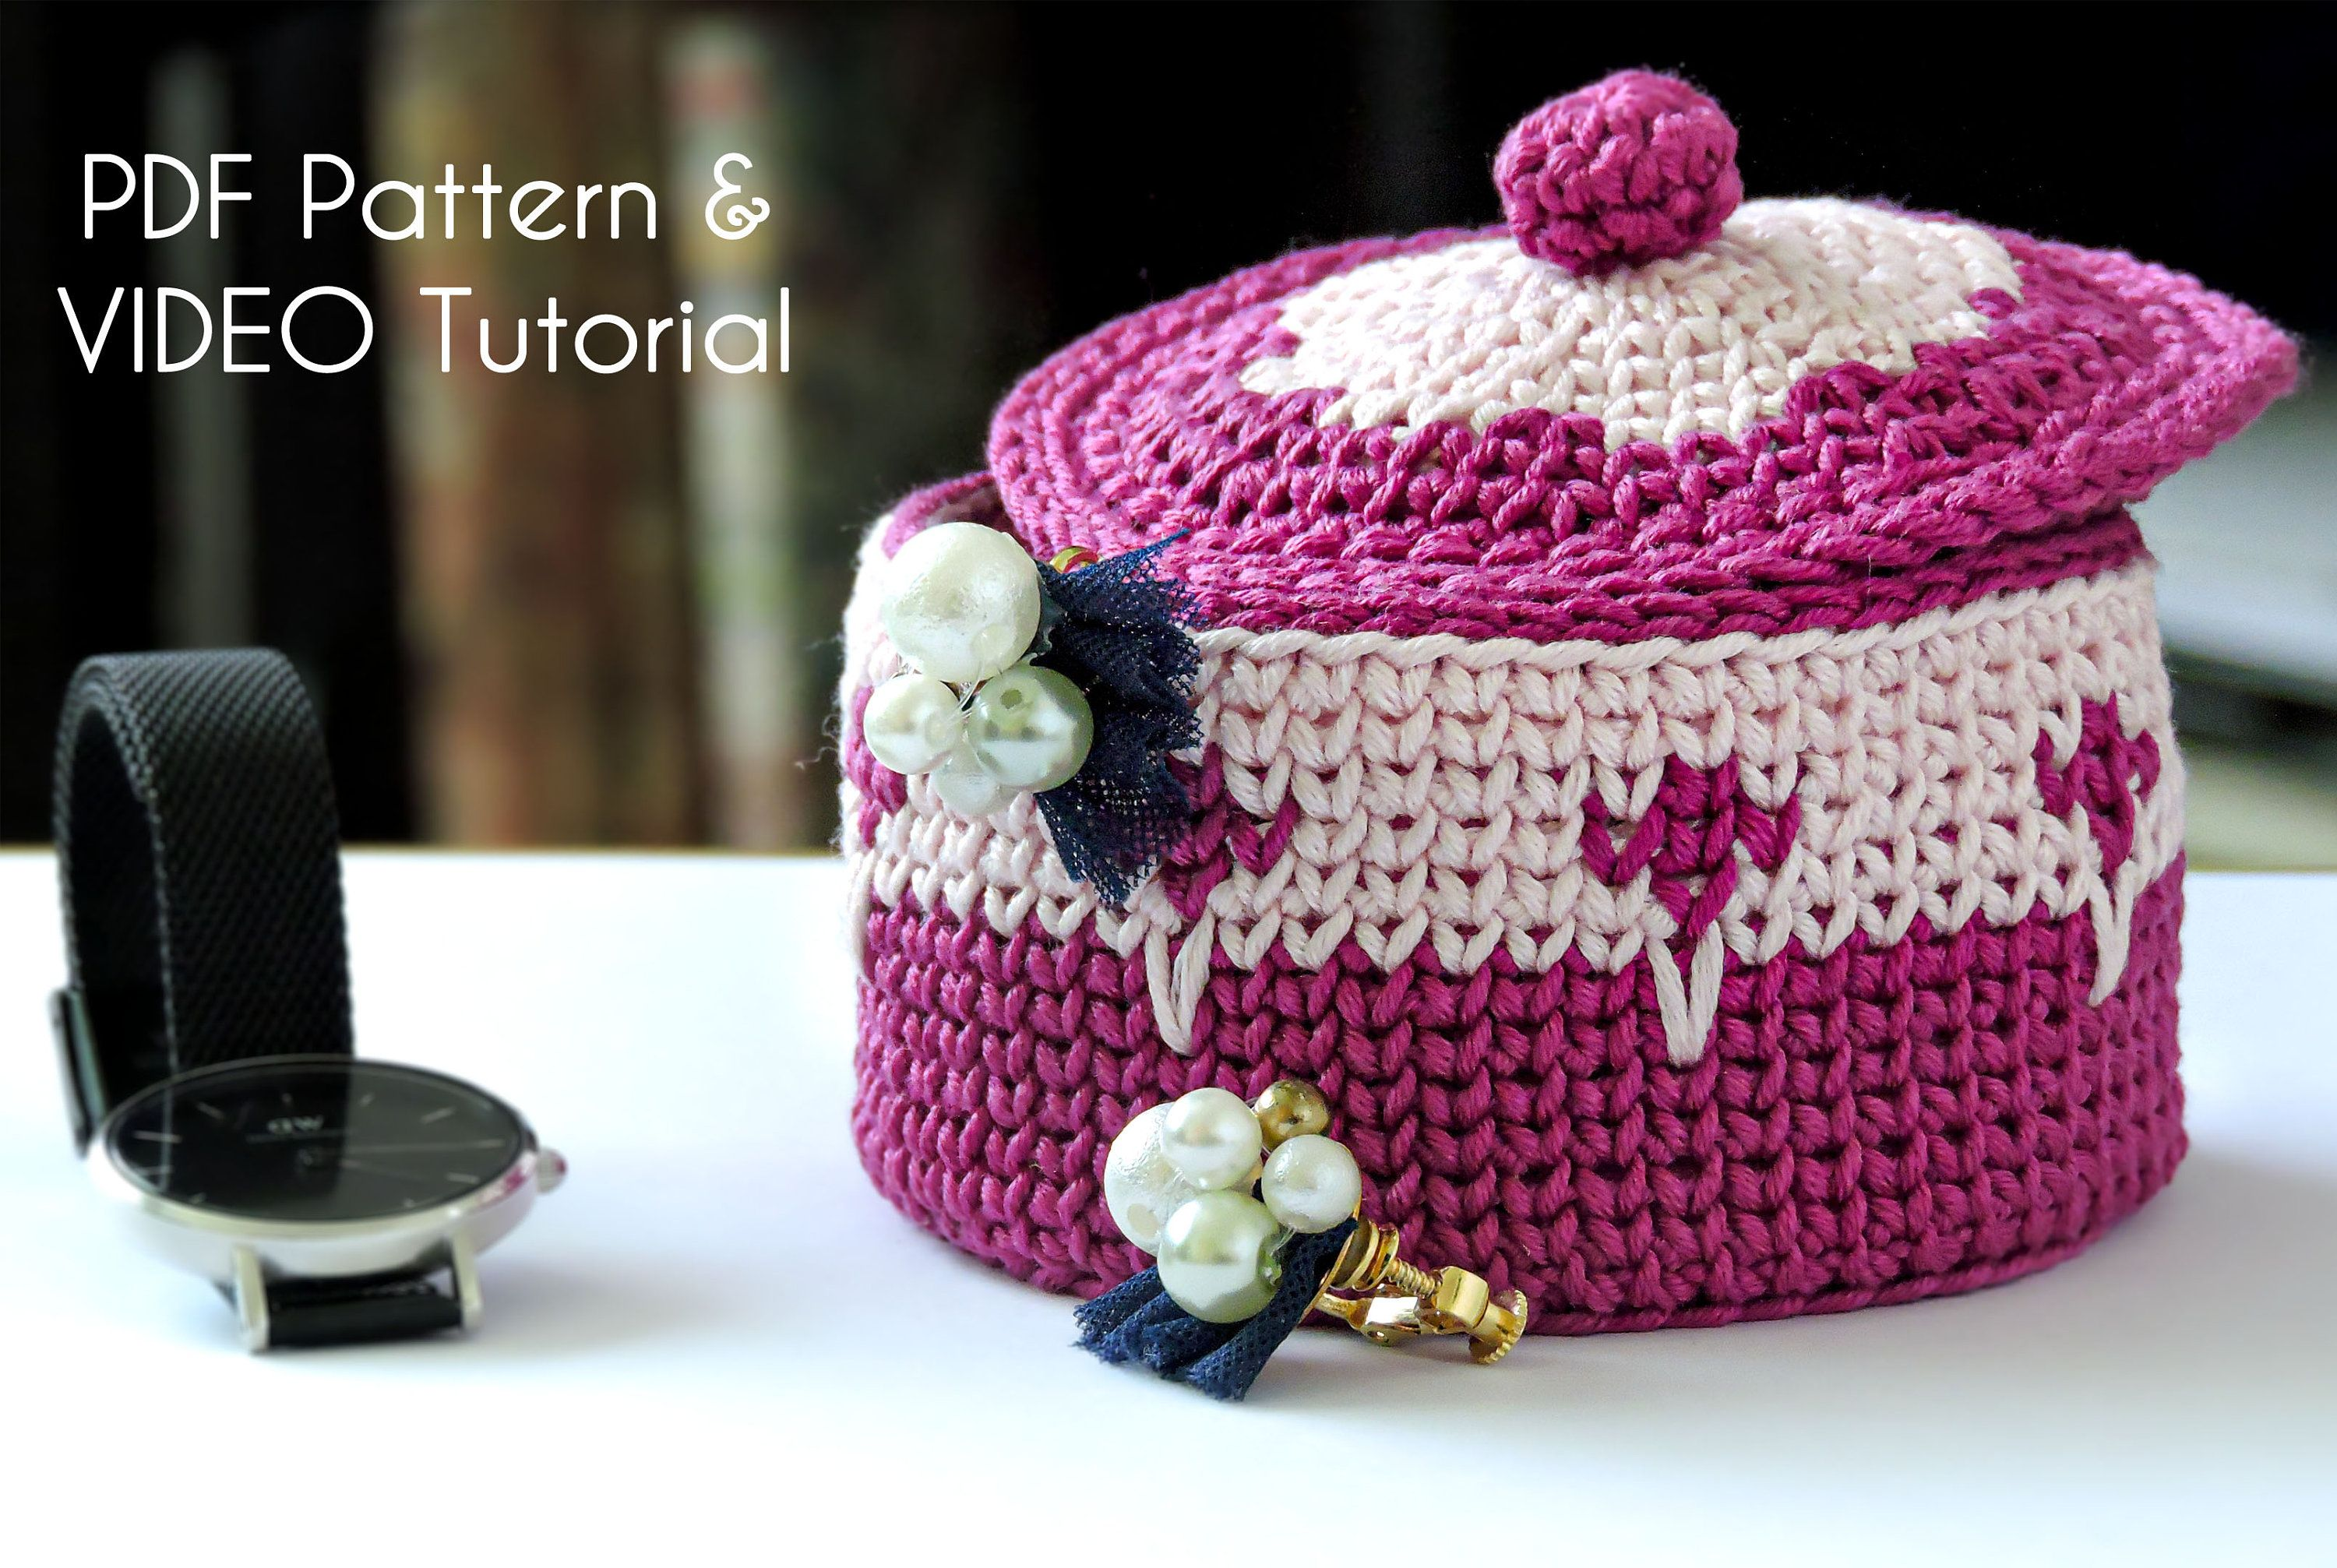 Crochet Bowl with Lid, Lidded Box, Jewellery Bowl, Crochet Lidded Bowl, PDF Crochet Pattern, Crochet Video Tutorial